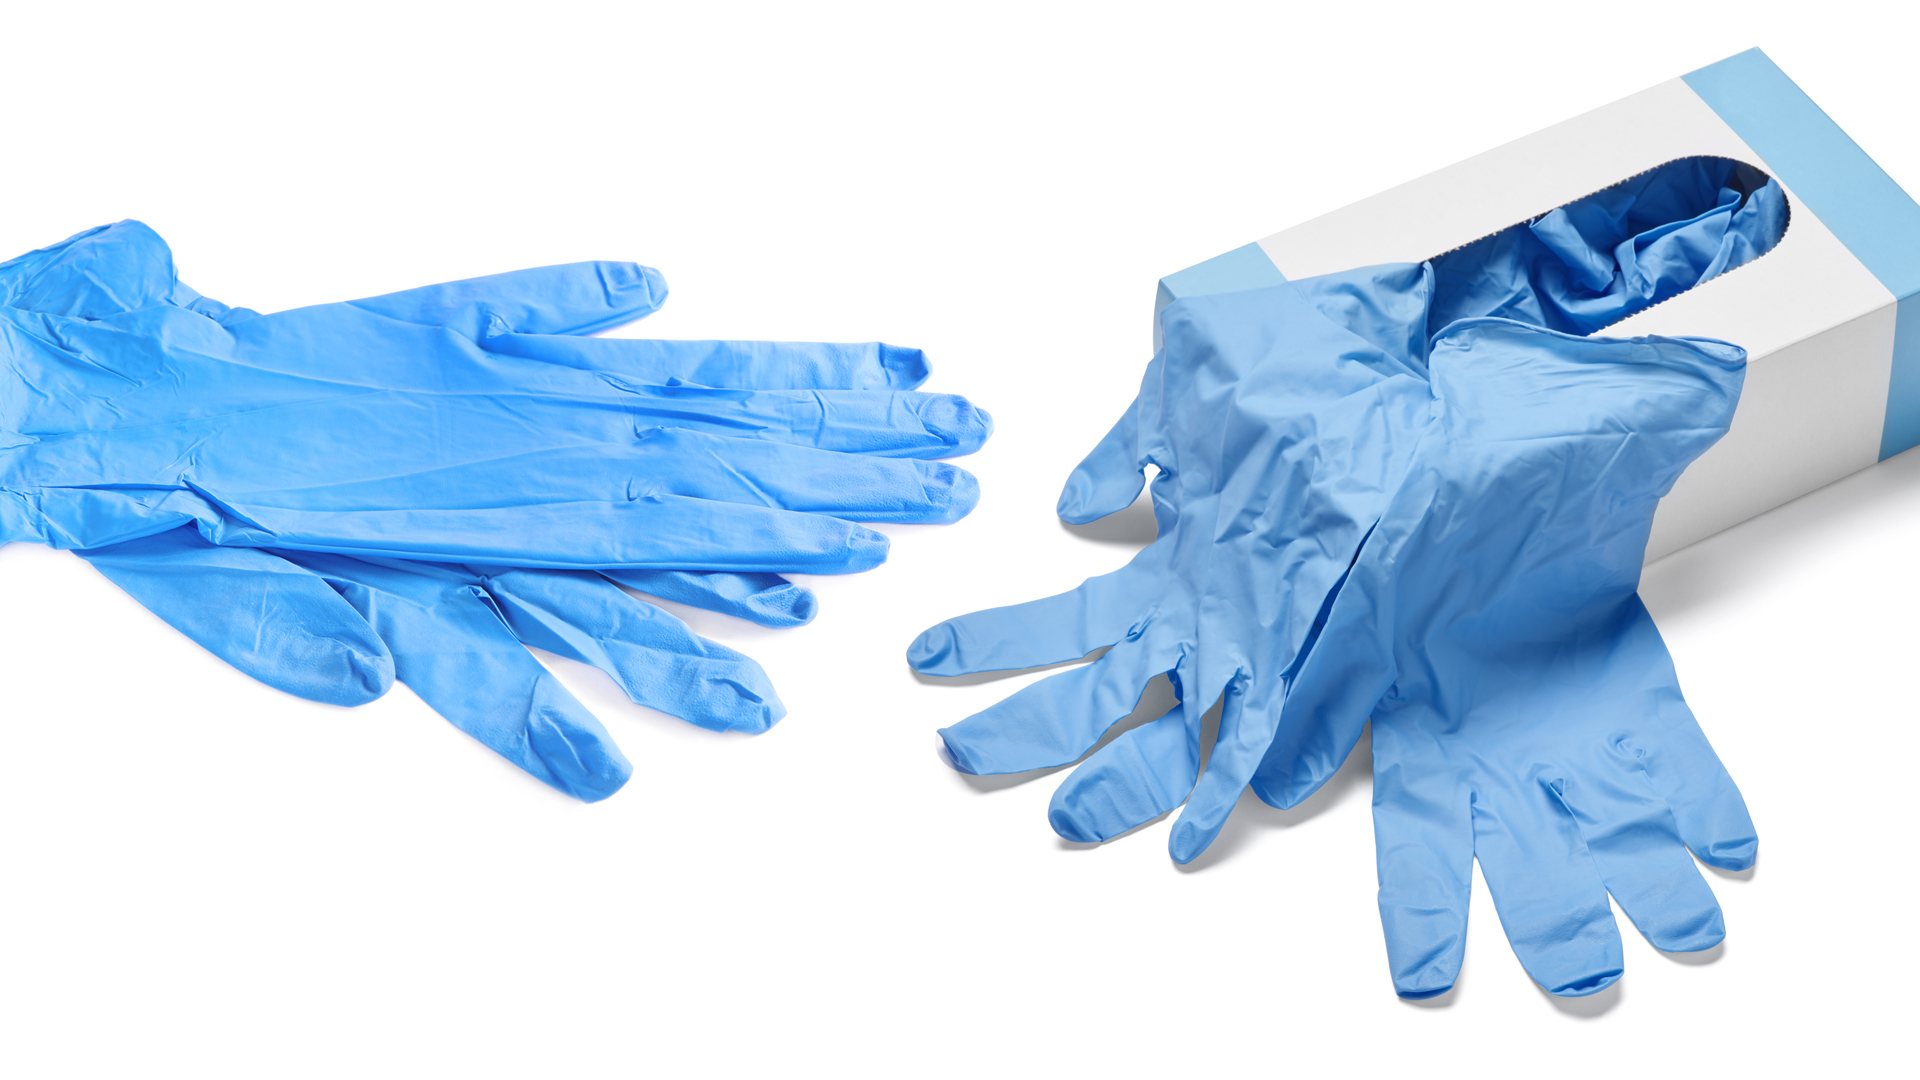 Amazon Updates US Requirements for Medical Gloves